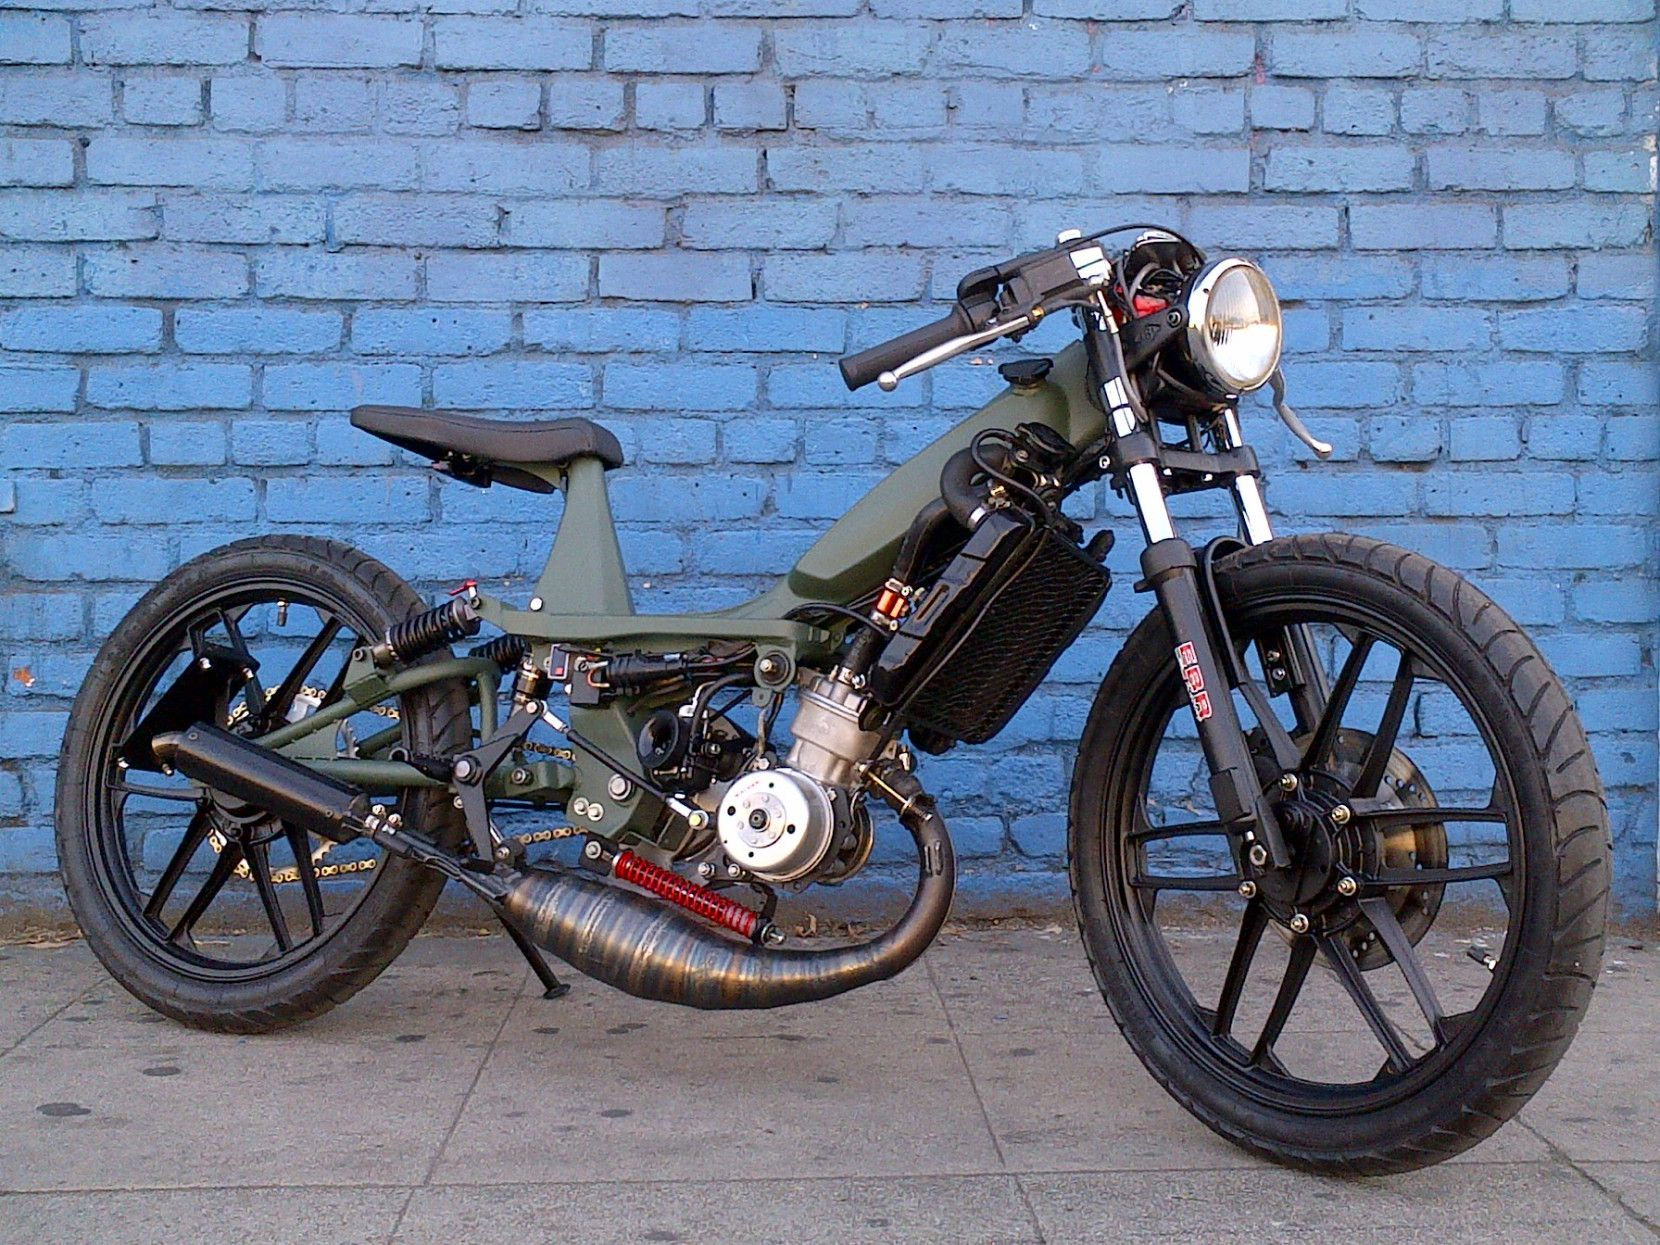 Mbk 51 MG Street Fighter Custom moped, 50cc moped, Moped